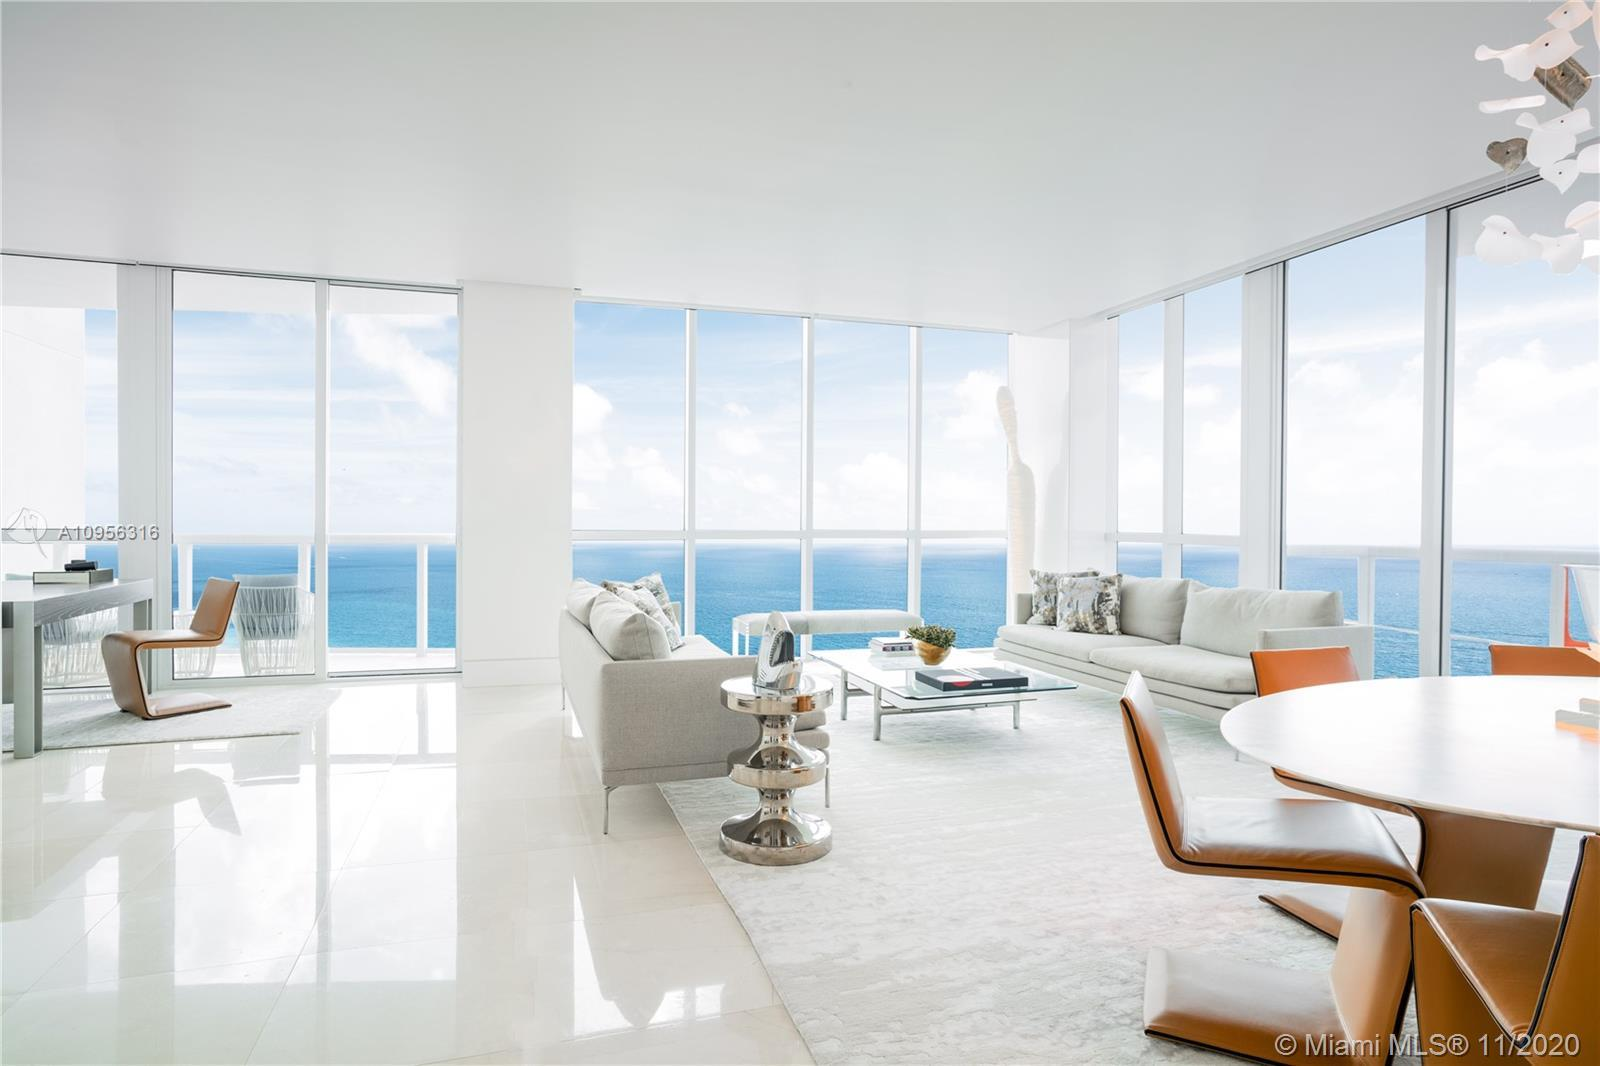 One of the very best residences at Continuum North, 2802 will certainly impress the moment you step